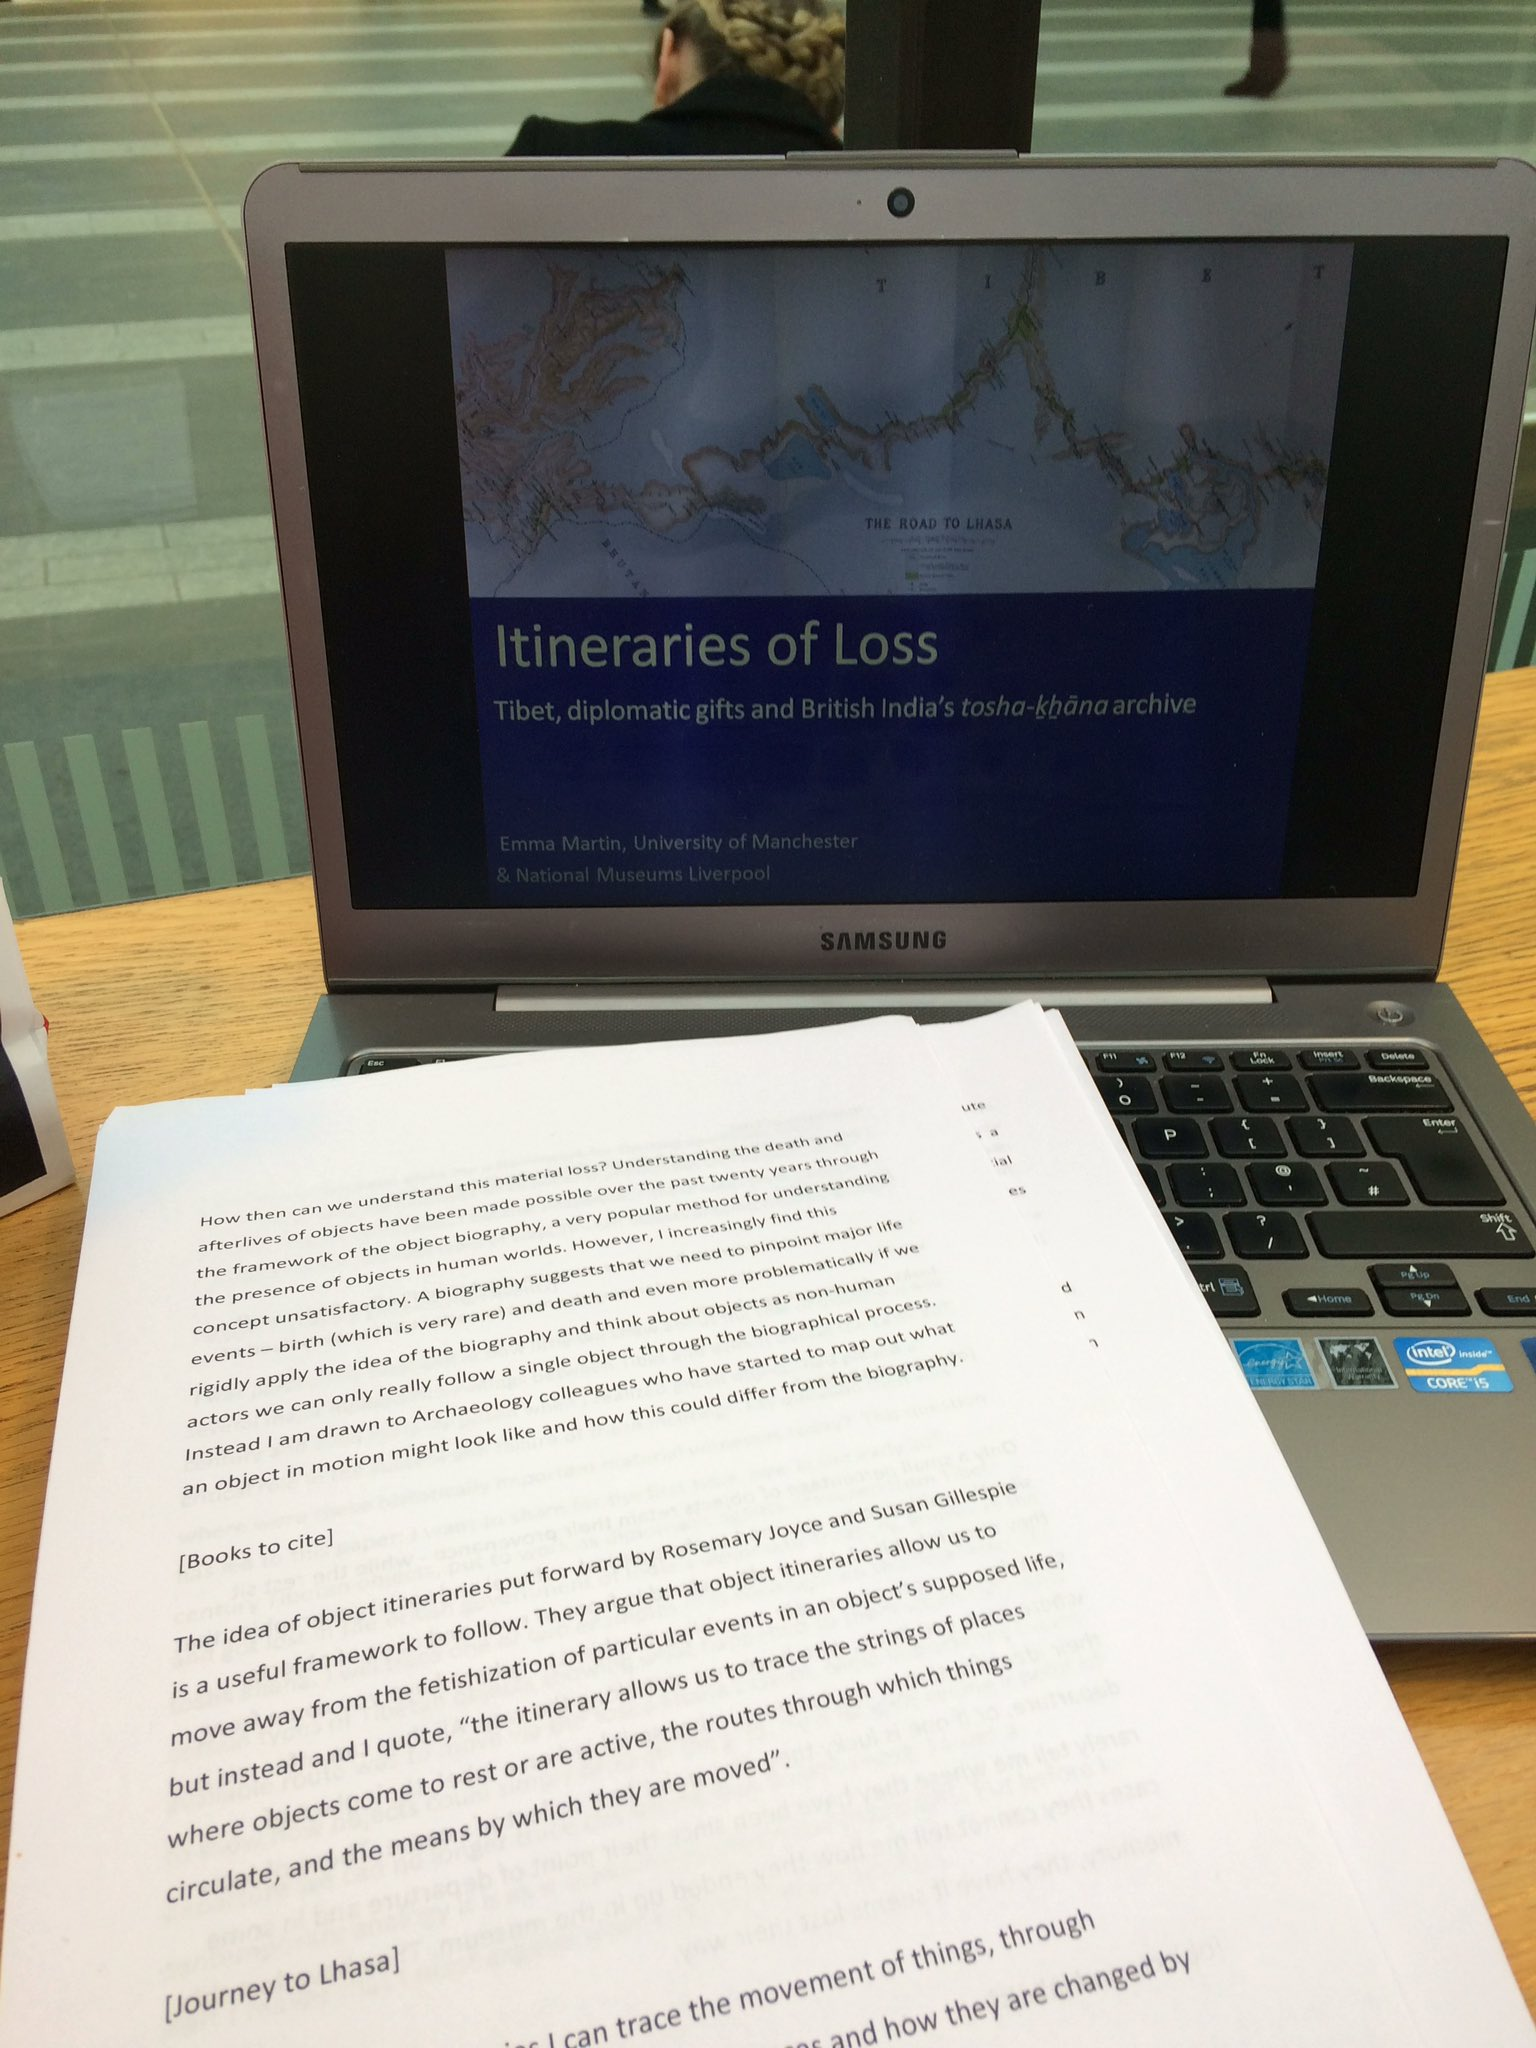 Final run through of my talk for Understanding #MaterialLoss conference @BarberInstitute looking forward to some great papers https://t.co/FChVuANghb